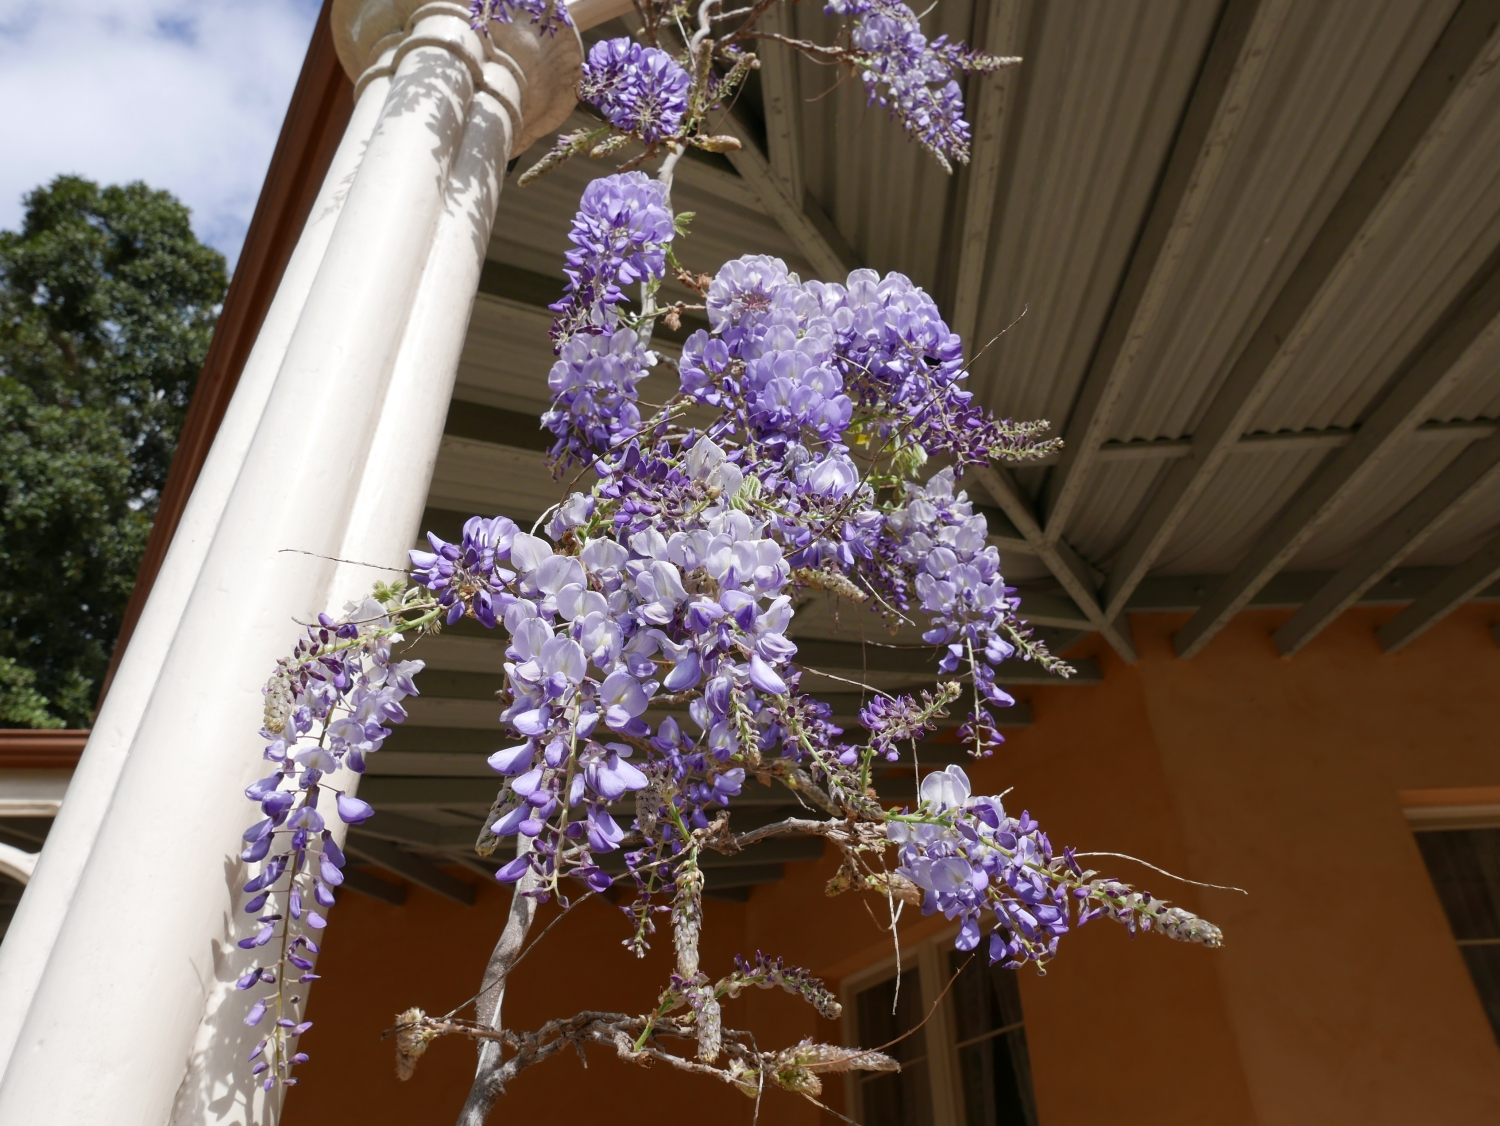 The wisteria at Vaucluse house begins to bloom